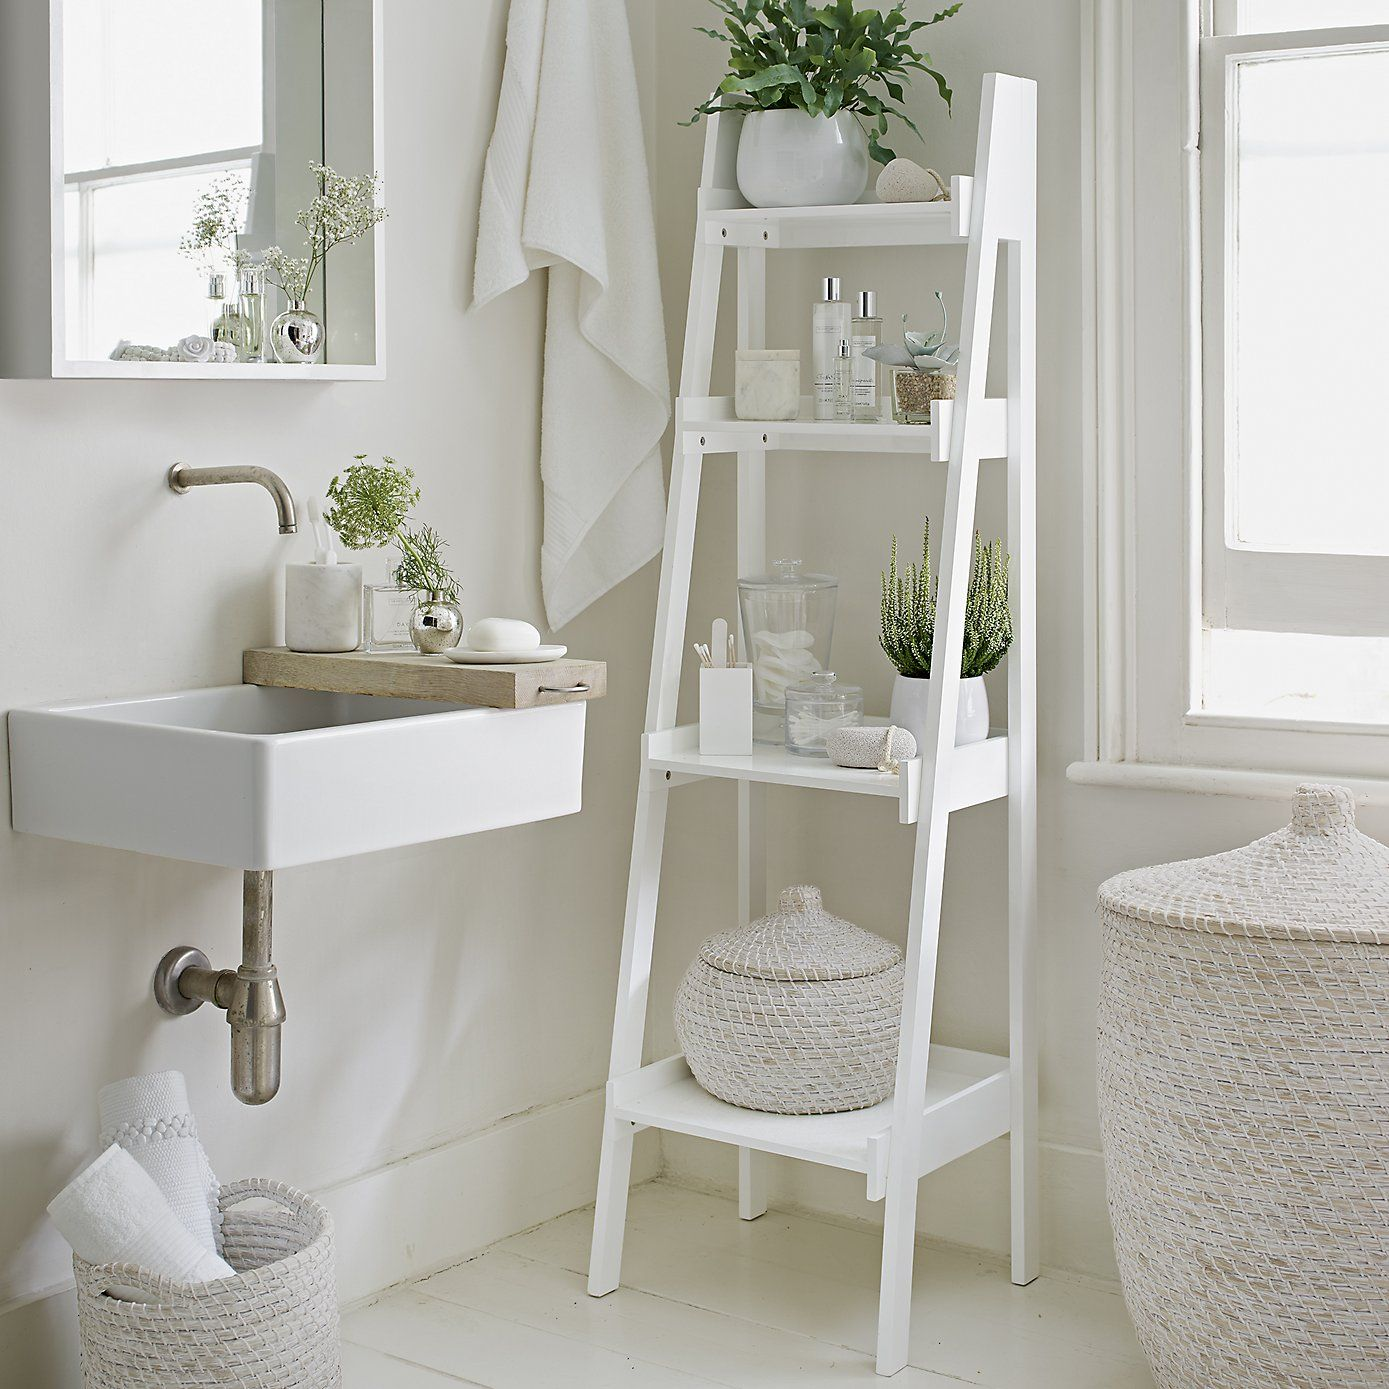 Bathroom Lacquer Ladder Shelf | Bathroom ladder shelf, Bathroom ...